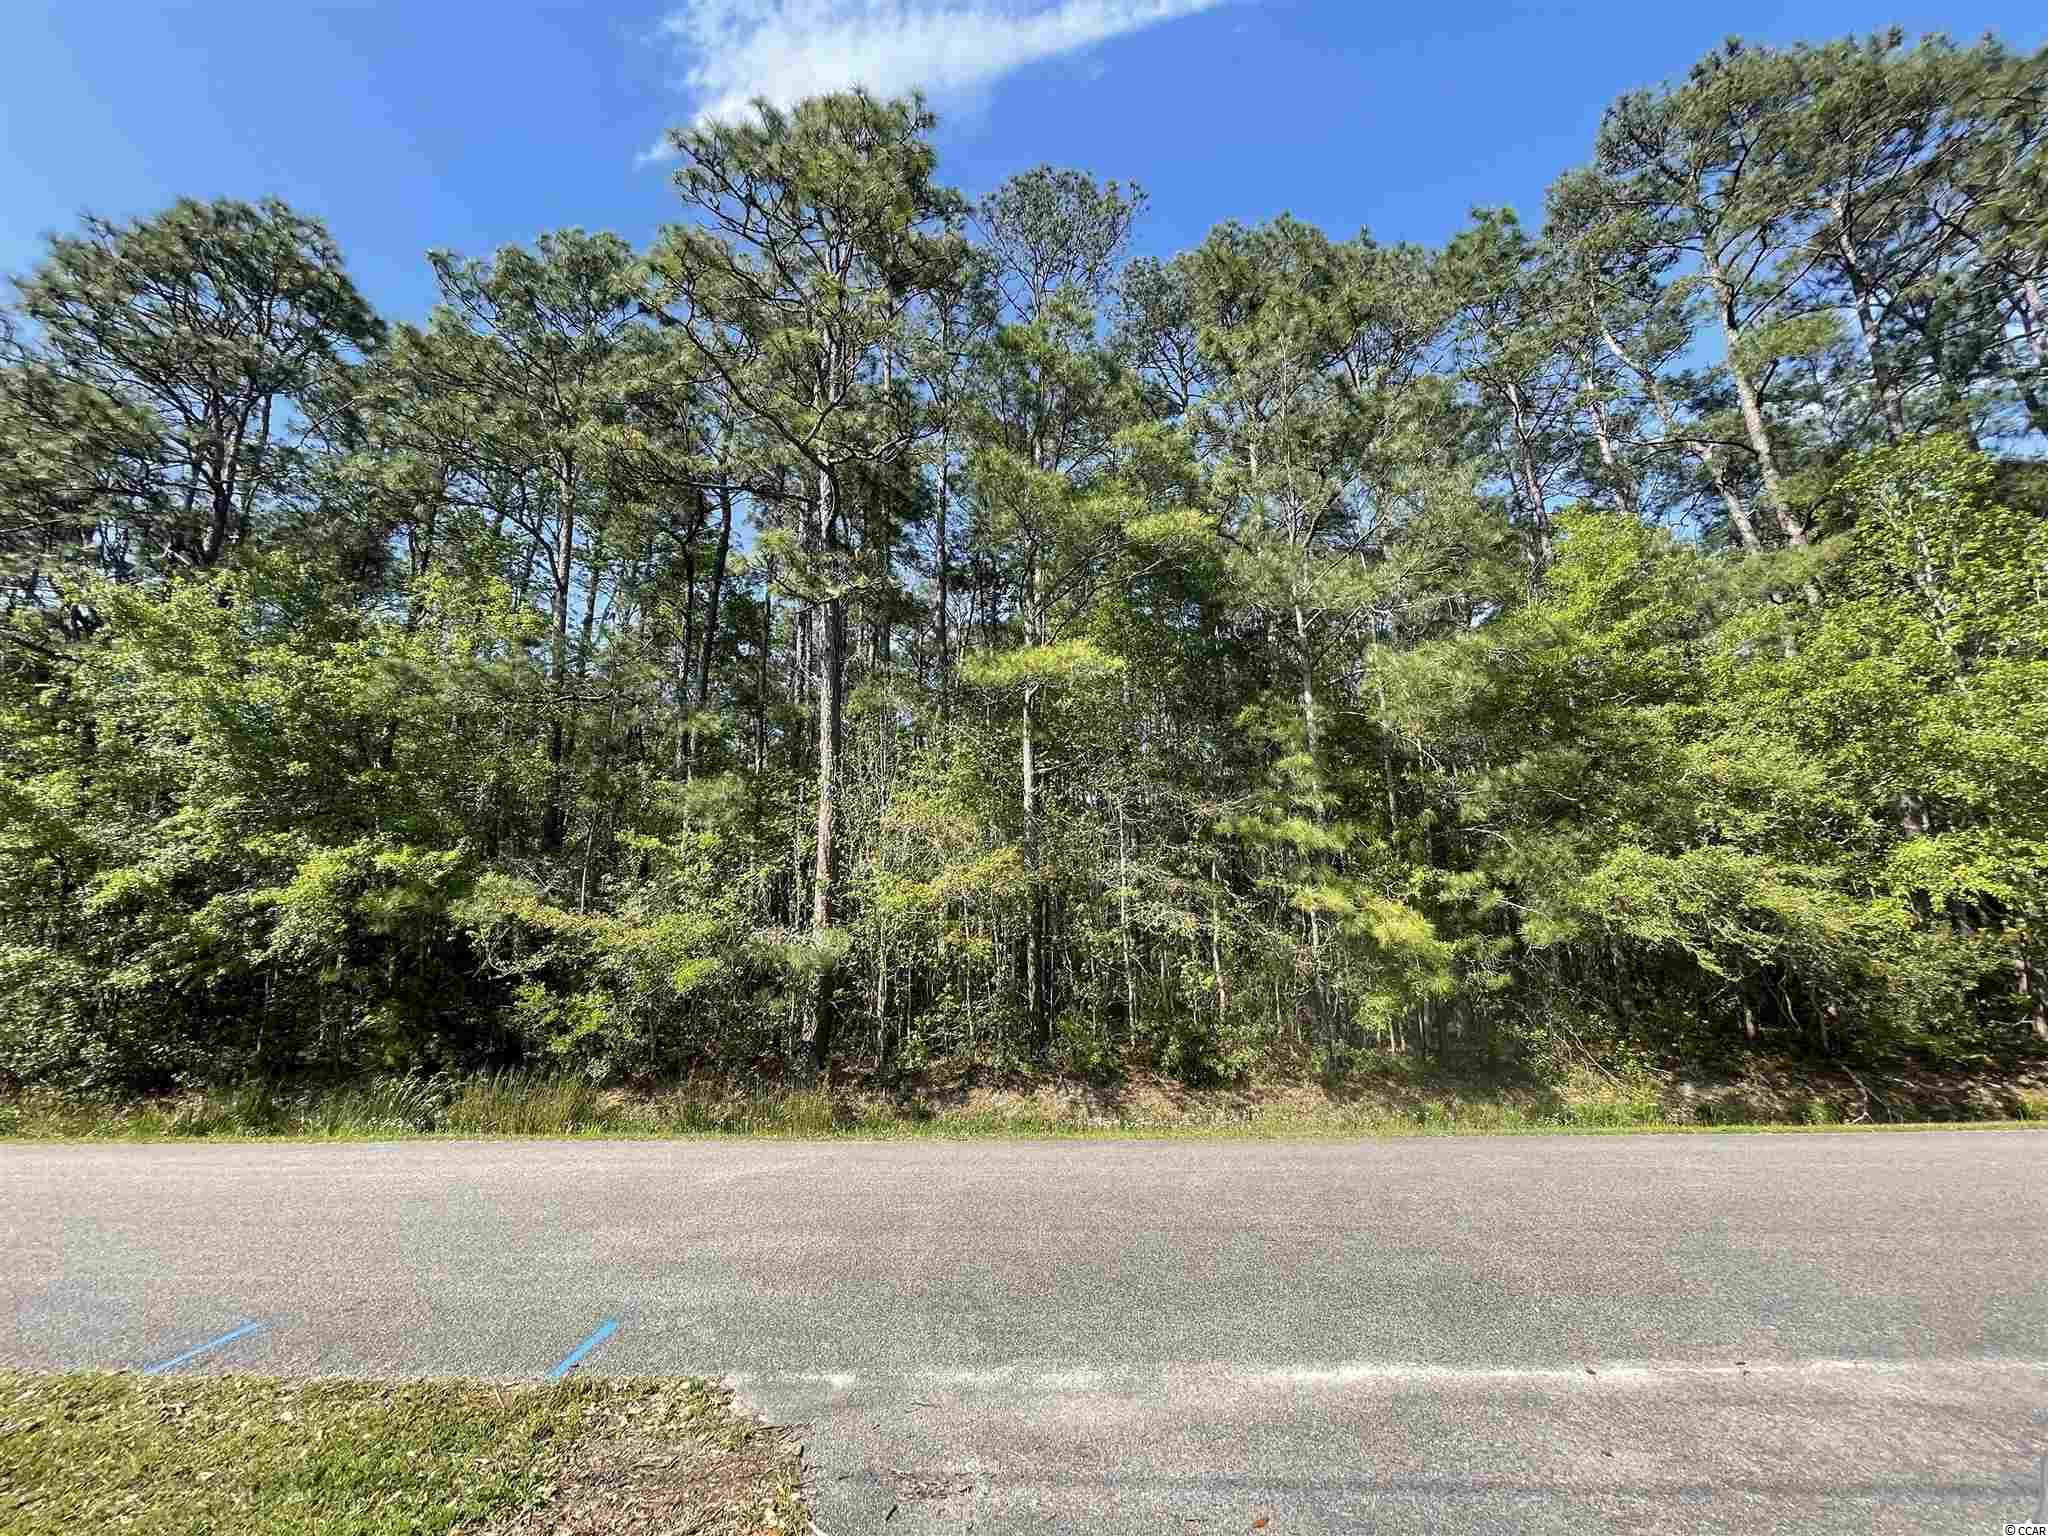 Looking for Acreage in Pawleys Island SC? Here you go! 1 acre located in the heart of Pawleys Island  with no HOA.  A short  drive to the beach, shopping, and restaurants.  Build your dream home on this beautiful lot. Buyer's responsibility to verify and confirm that property is connected to the county water system and sewer water disposal system. Buyer will be responsible for any costs associated with adding a water & sewer tap, and the water & sewer impact fees.